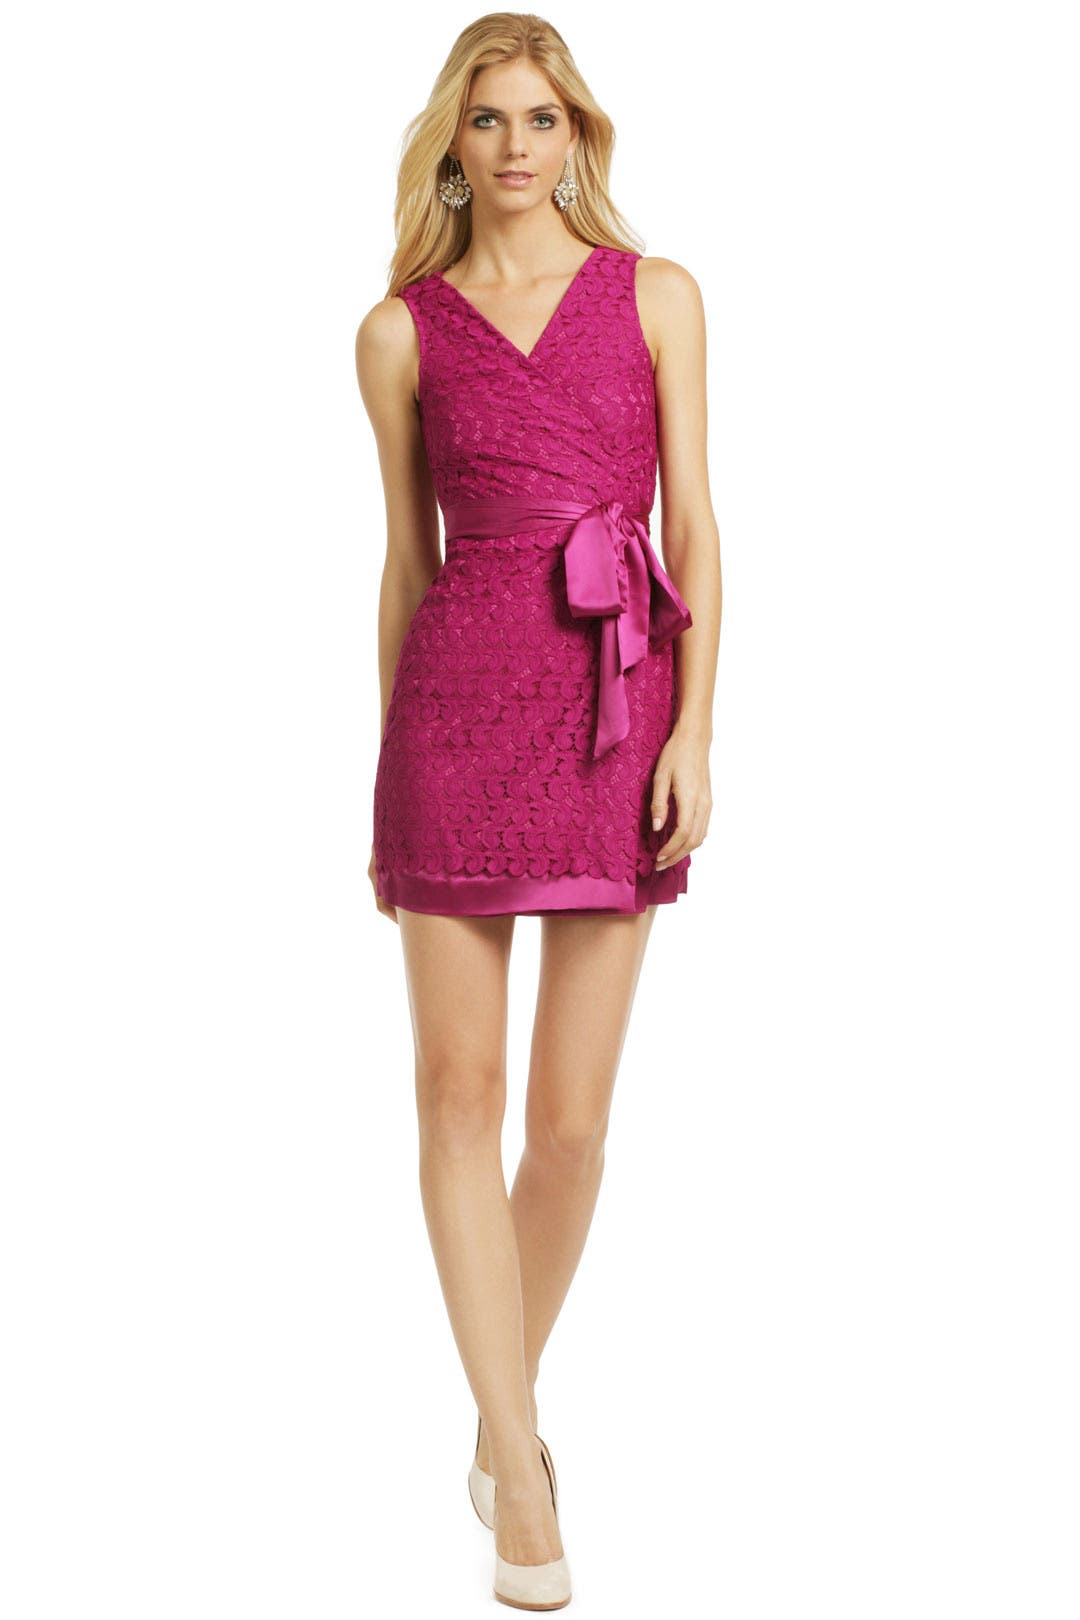 Dvf Wrap Dresses How Do They Run Size Wise Candy Swirl Dress by Diane von